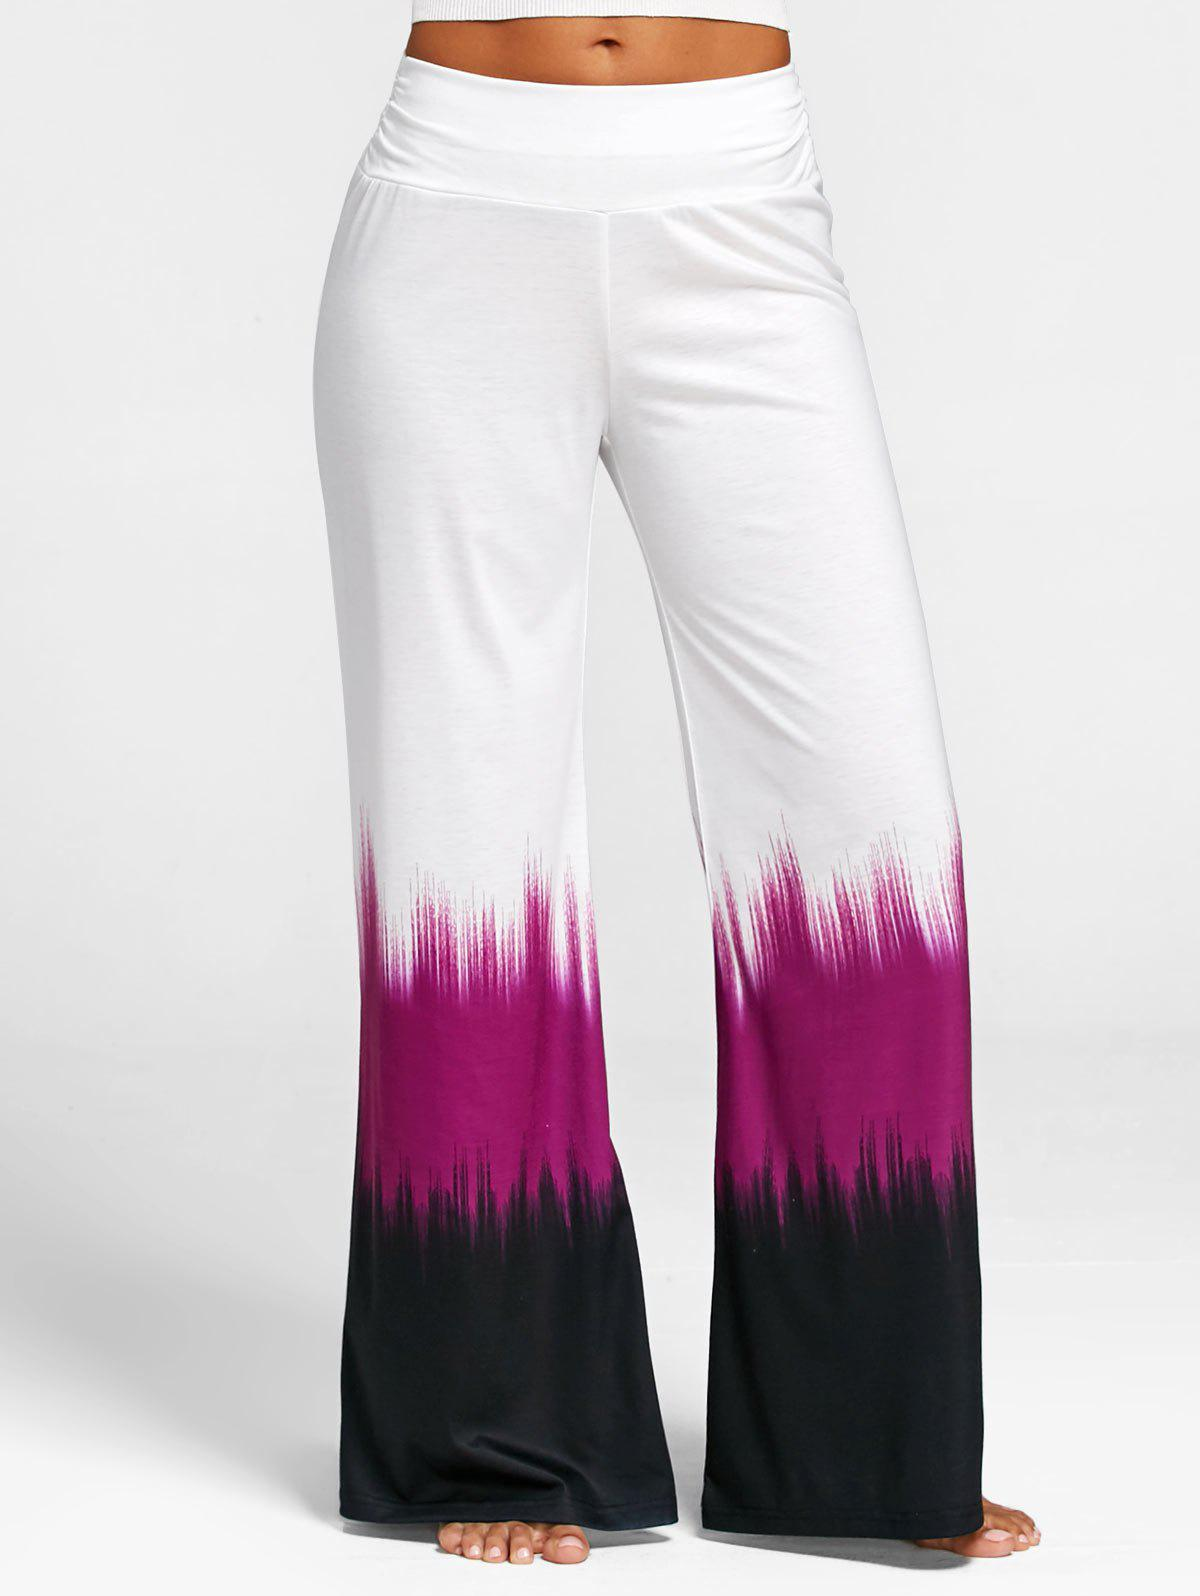 Wide Leg Tie Dye Casual Pants inc new gray white tie dye women s 16 tapered leg soft pull on pants $69 364